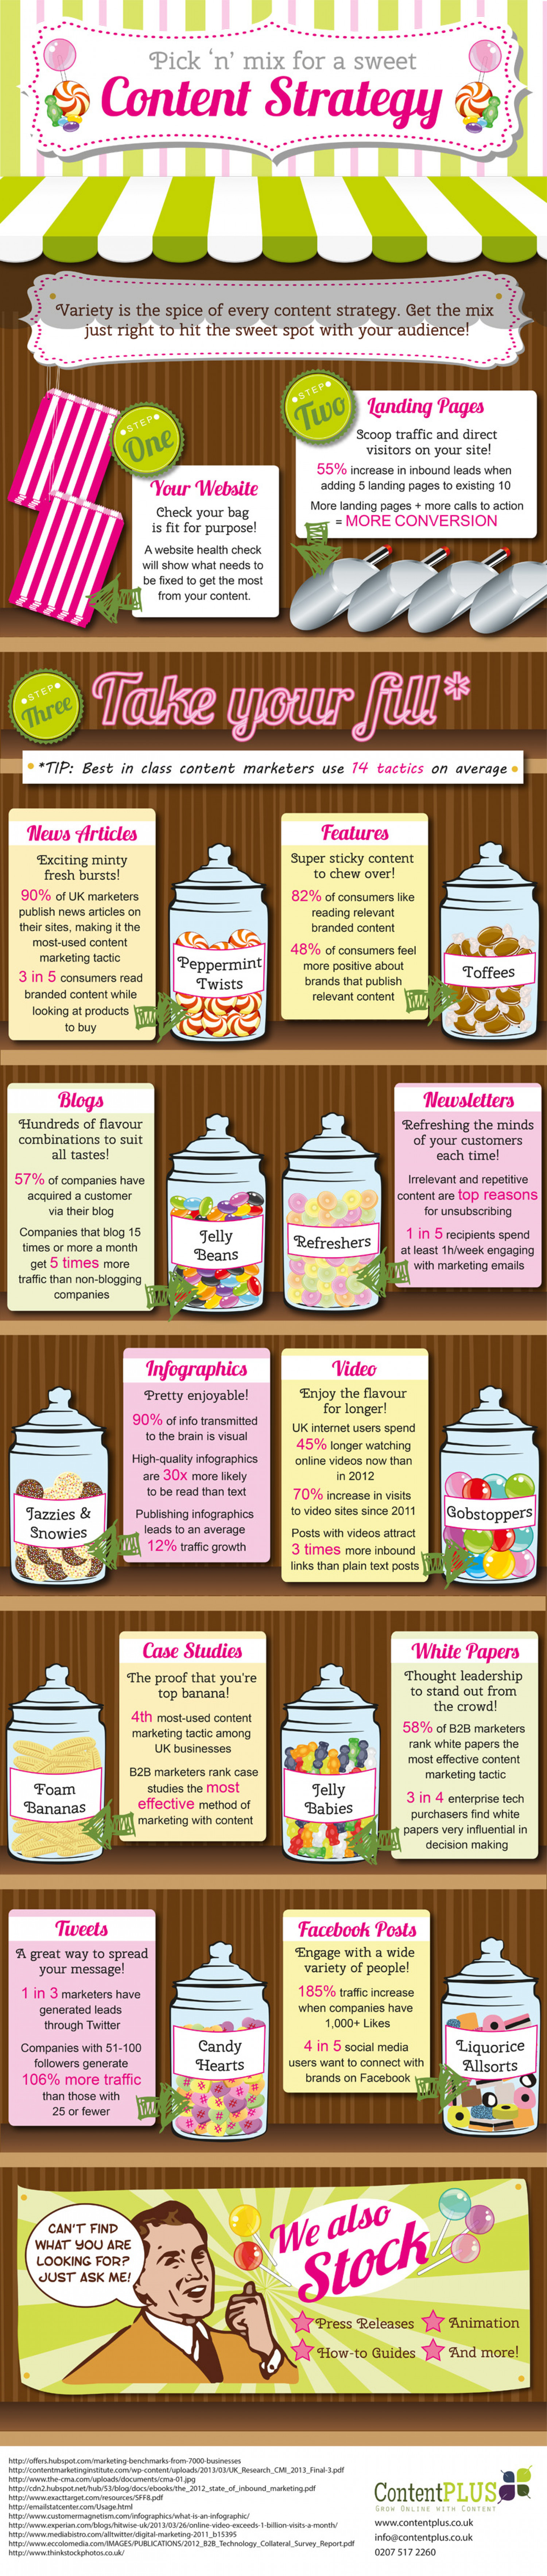 Content Strategy: Pick 'n' Mix Infographic